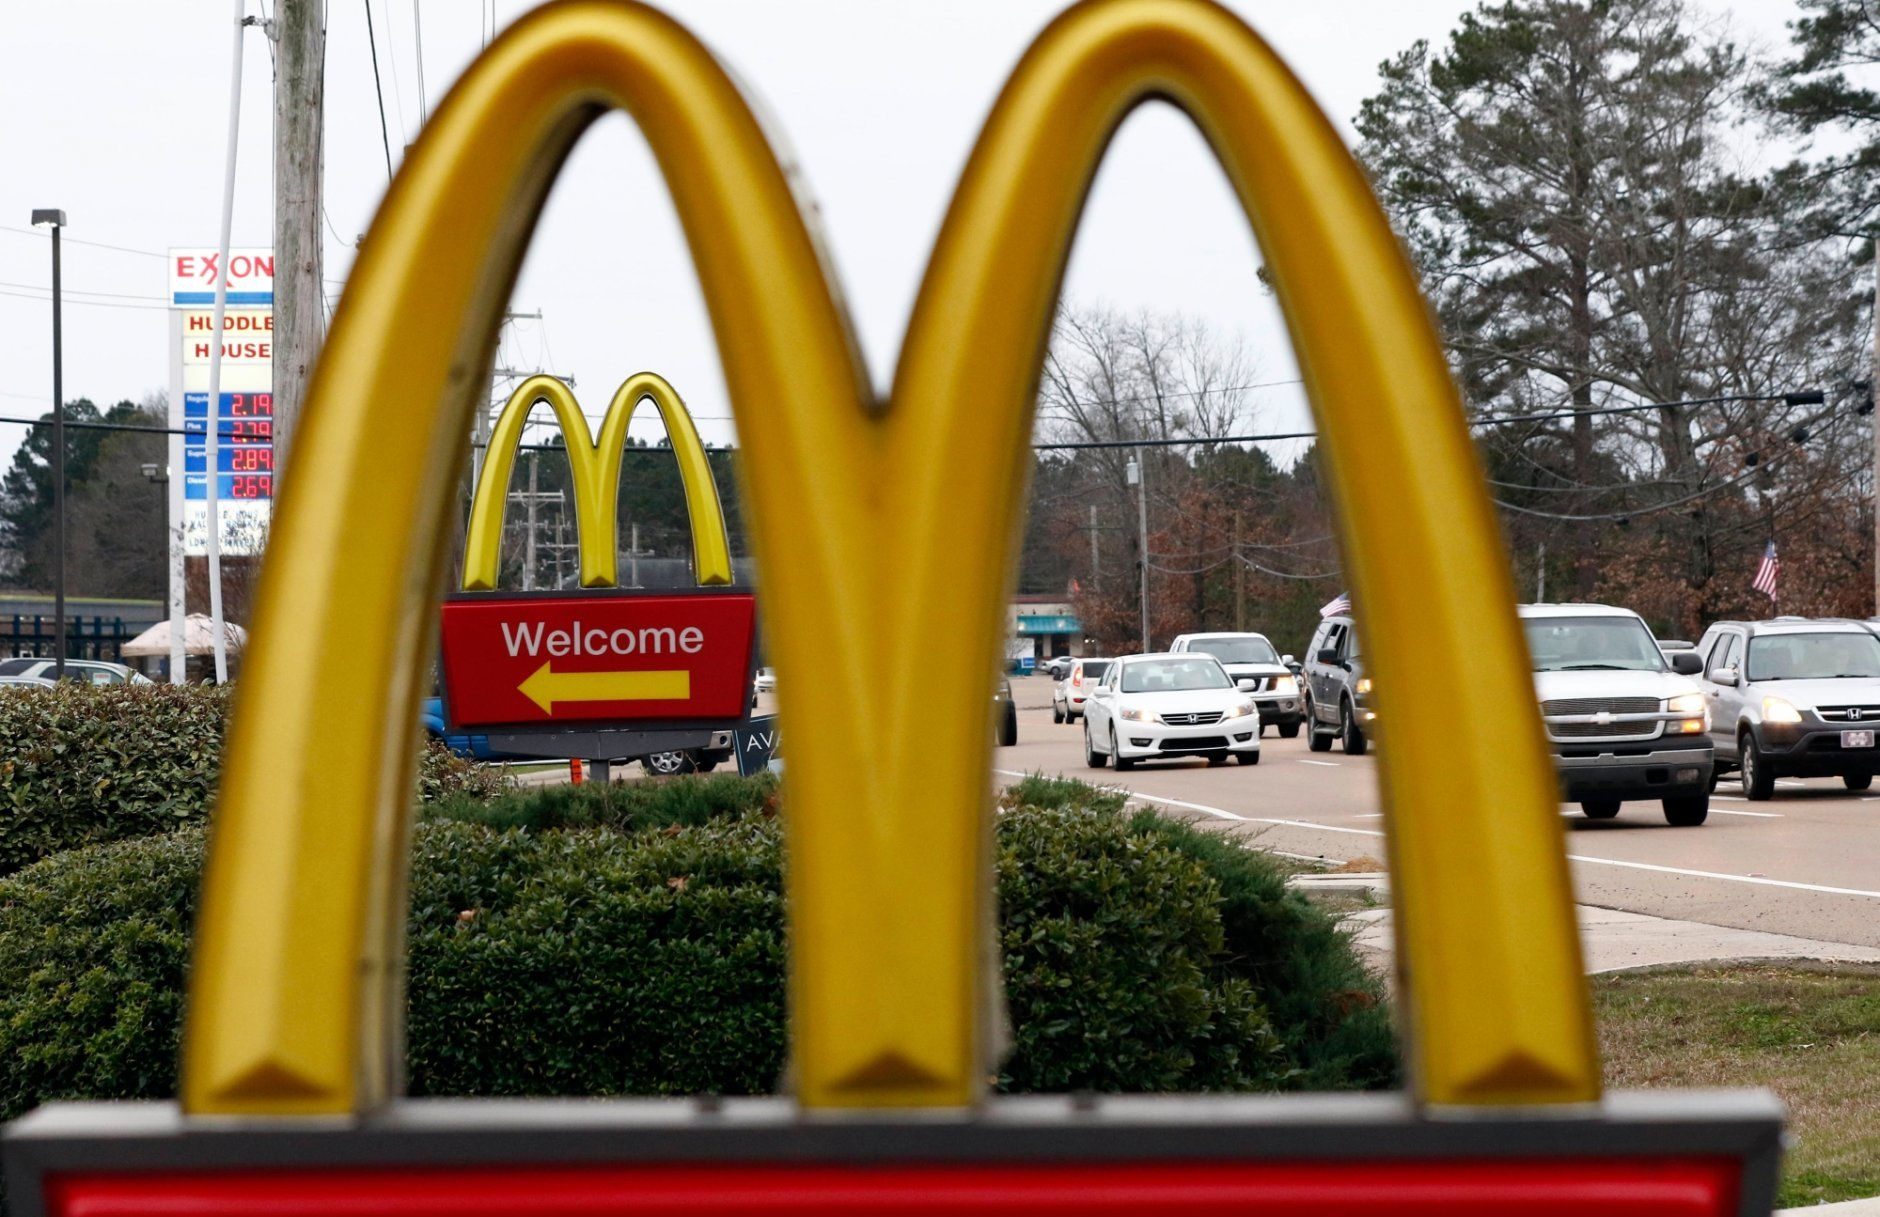 FILE - This Feb. 15, 2018, file photo shows a McDonald's Restaurant in Brandon, Miss. Seven national fast-food chains have agreed to end policies that block workers from changing branches, limiting their wages and job opportunities, under the threat of legal action from the state of Washington. Washington Attorney General Bob Ferguson announced the binding agreements with companies including Arby's, Jimmy John's and Cinnabon, at a news conference Thursday, July 12, 2018. McDonald's also signed on, but previously announced plans to end the practice. (AP Photo/Rogelio V. Solis, File)